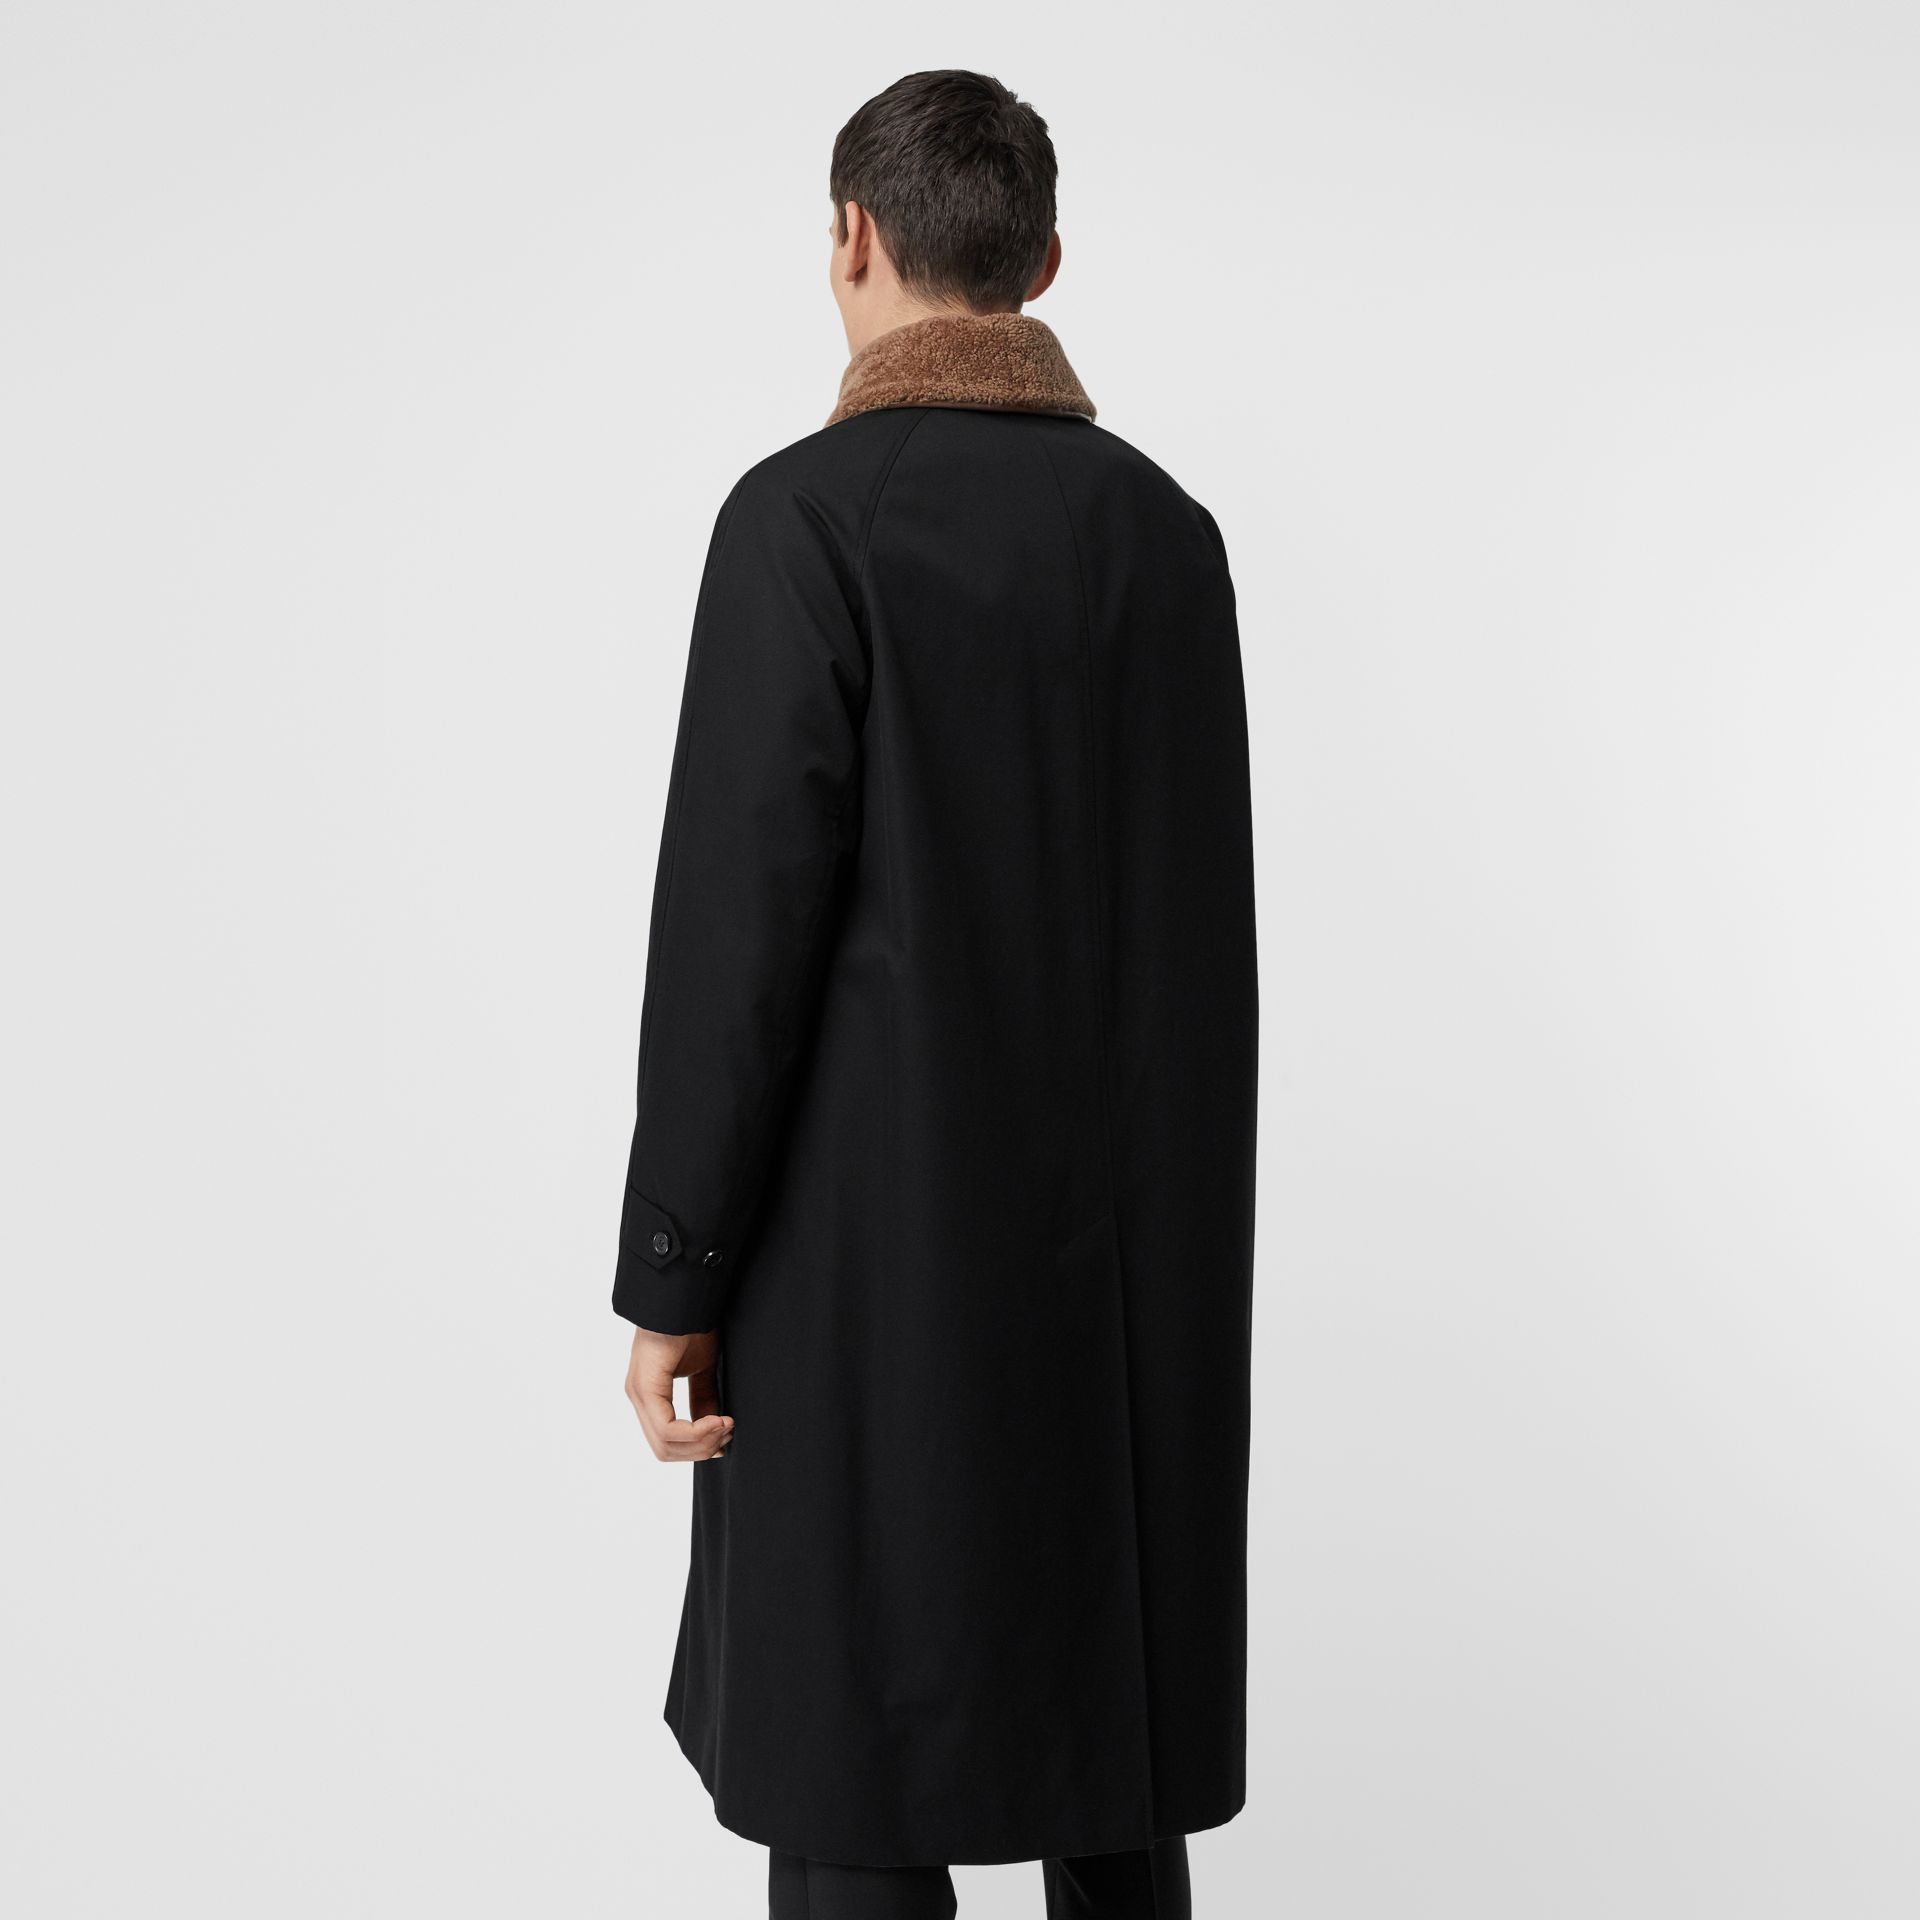 Contrast Shearling Collar Cotton Car Coat in Black - Men | Burberry Canada - gallery image 2